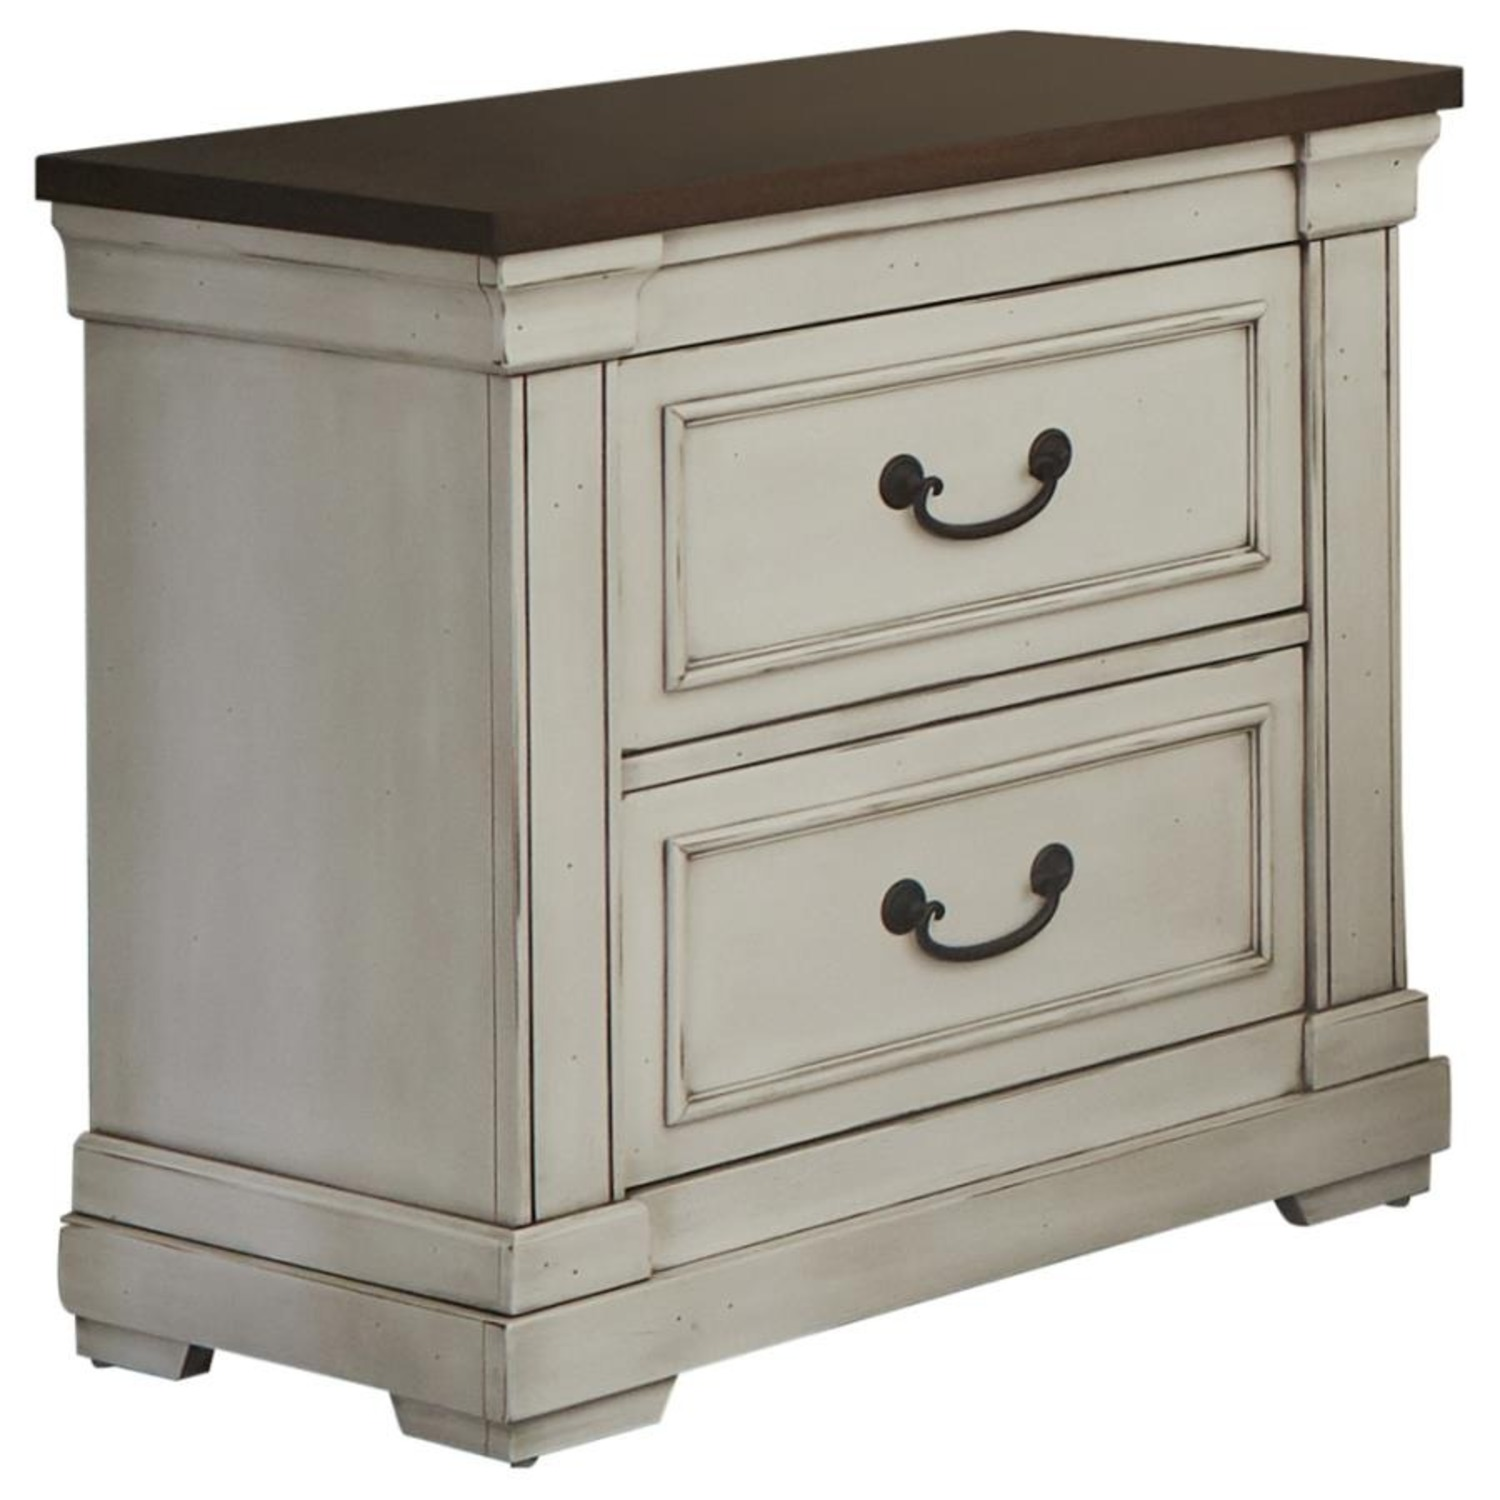 Nightstand W/ 2 Drawers In Dark Rum Finish - image-1